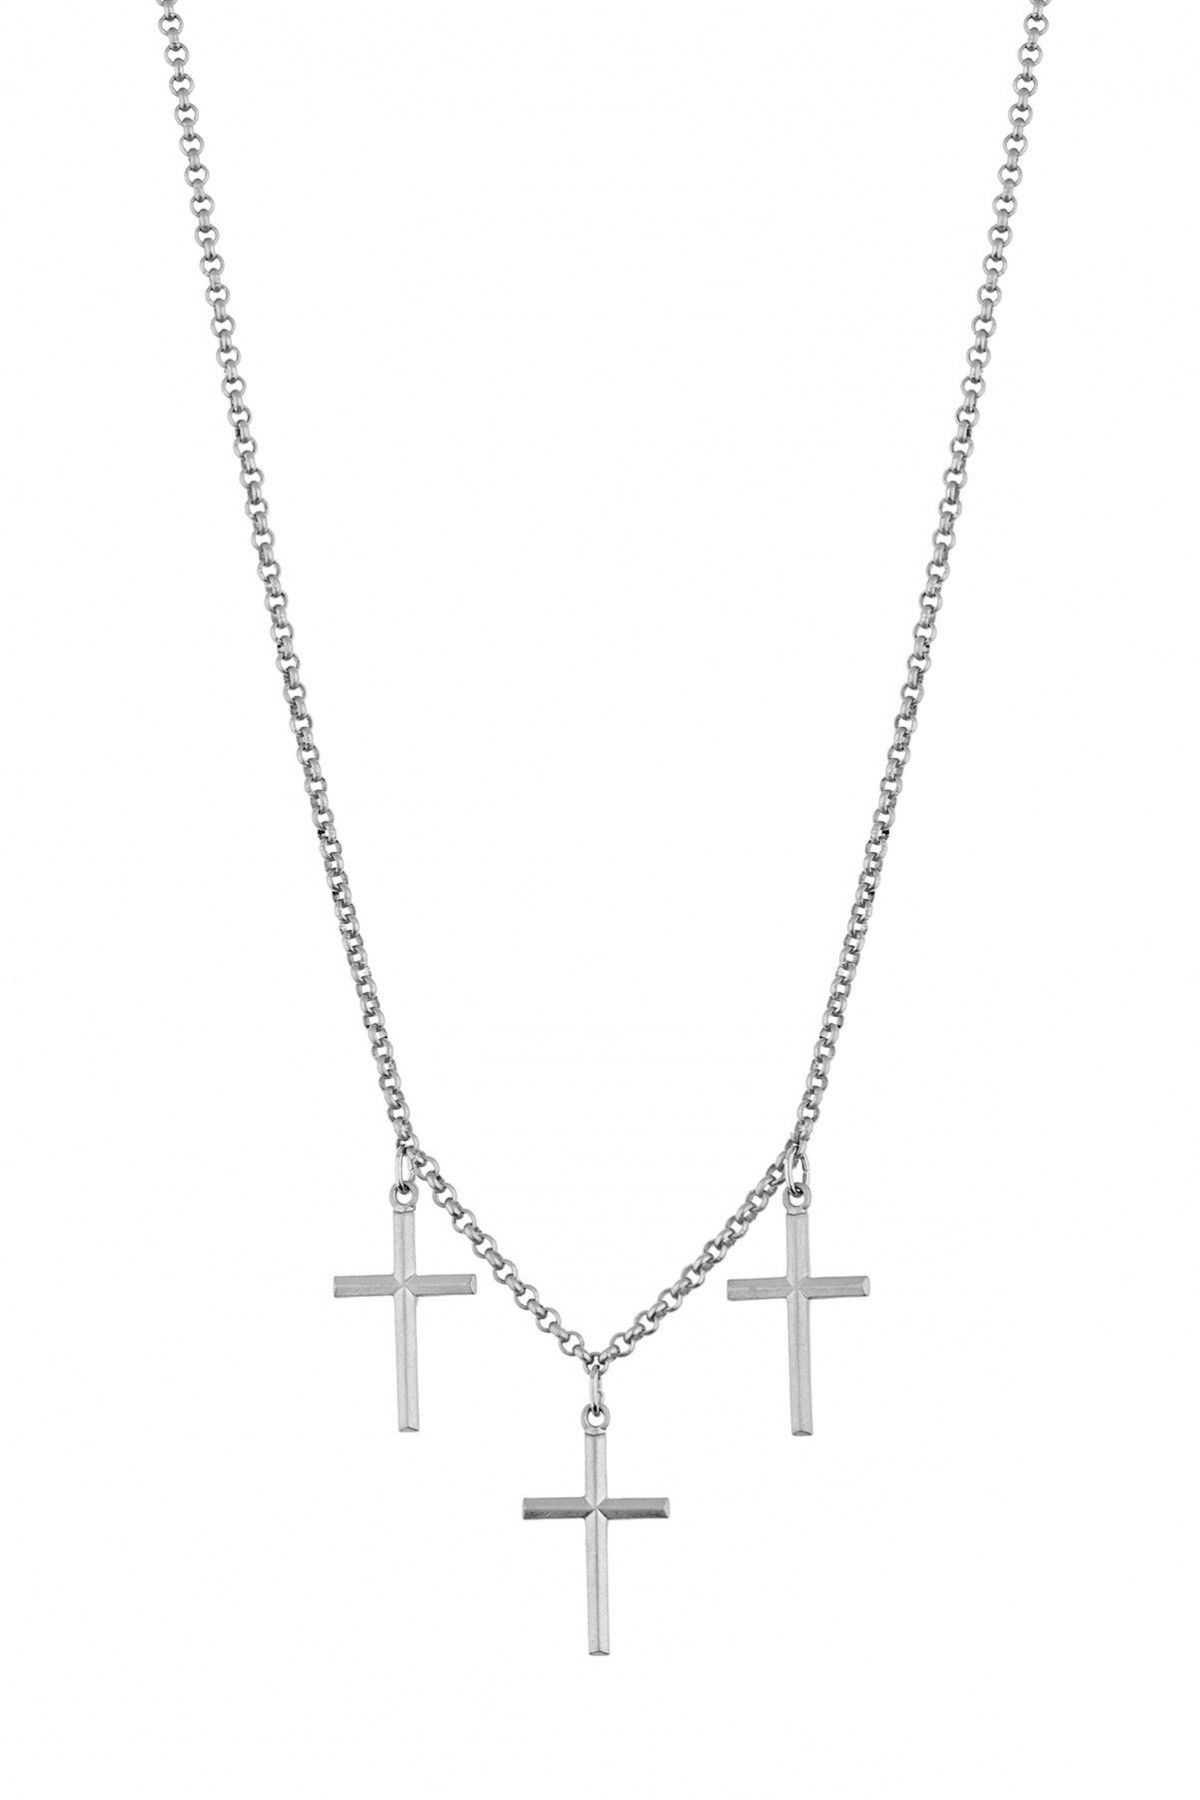 The Crosses Necklace